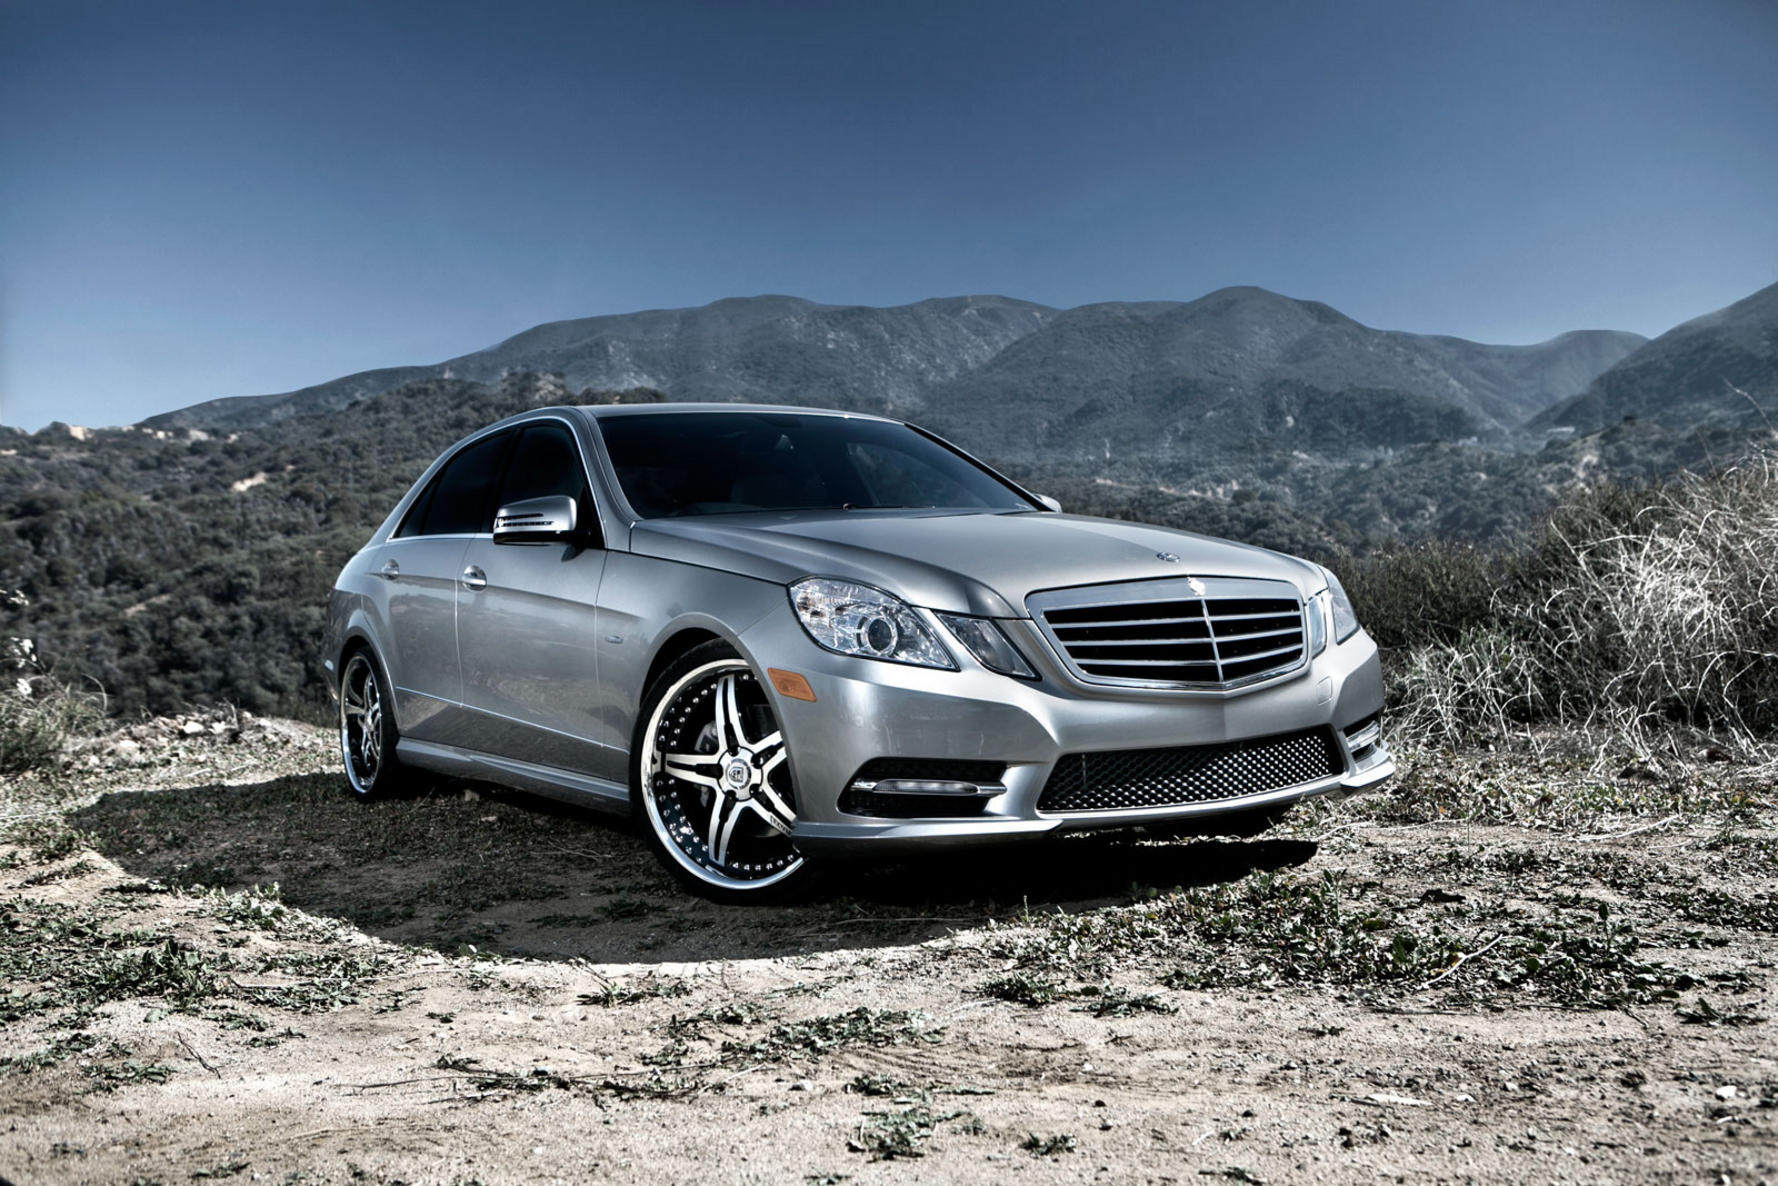 Mercedes benz recalls e350 and e550 units for airbag issue for 2012 mercedes benz e class e350